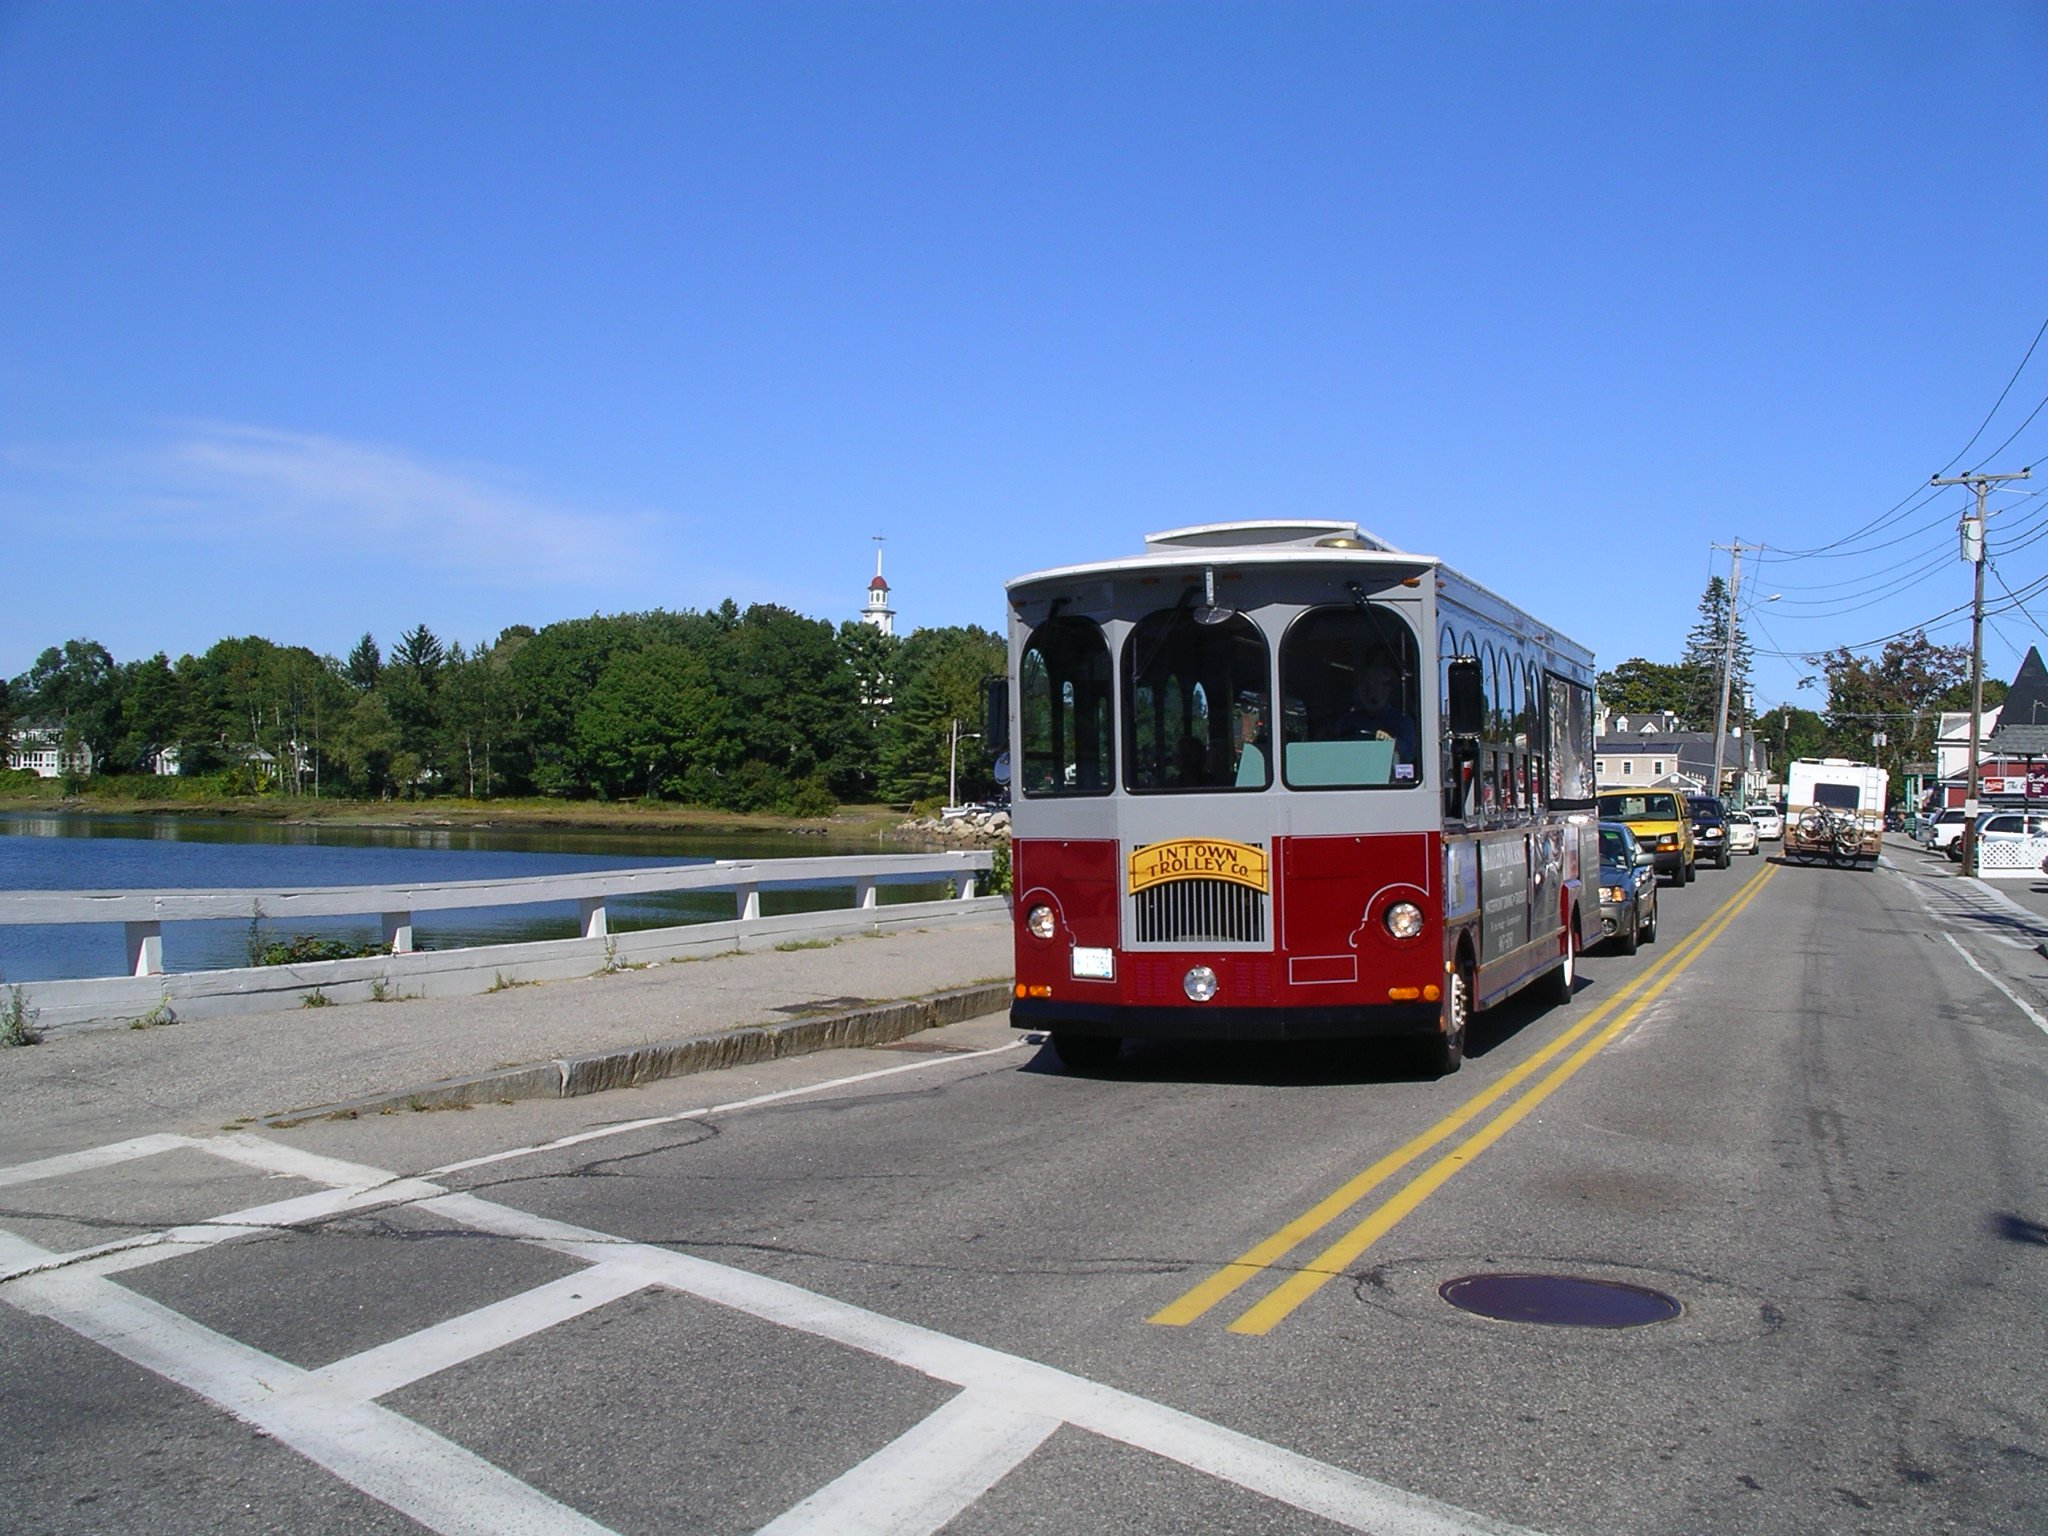 Trolley Kennebunkport - see much more at KennebunkportMaineLodging.com Site